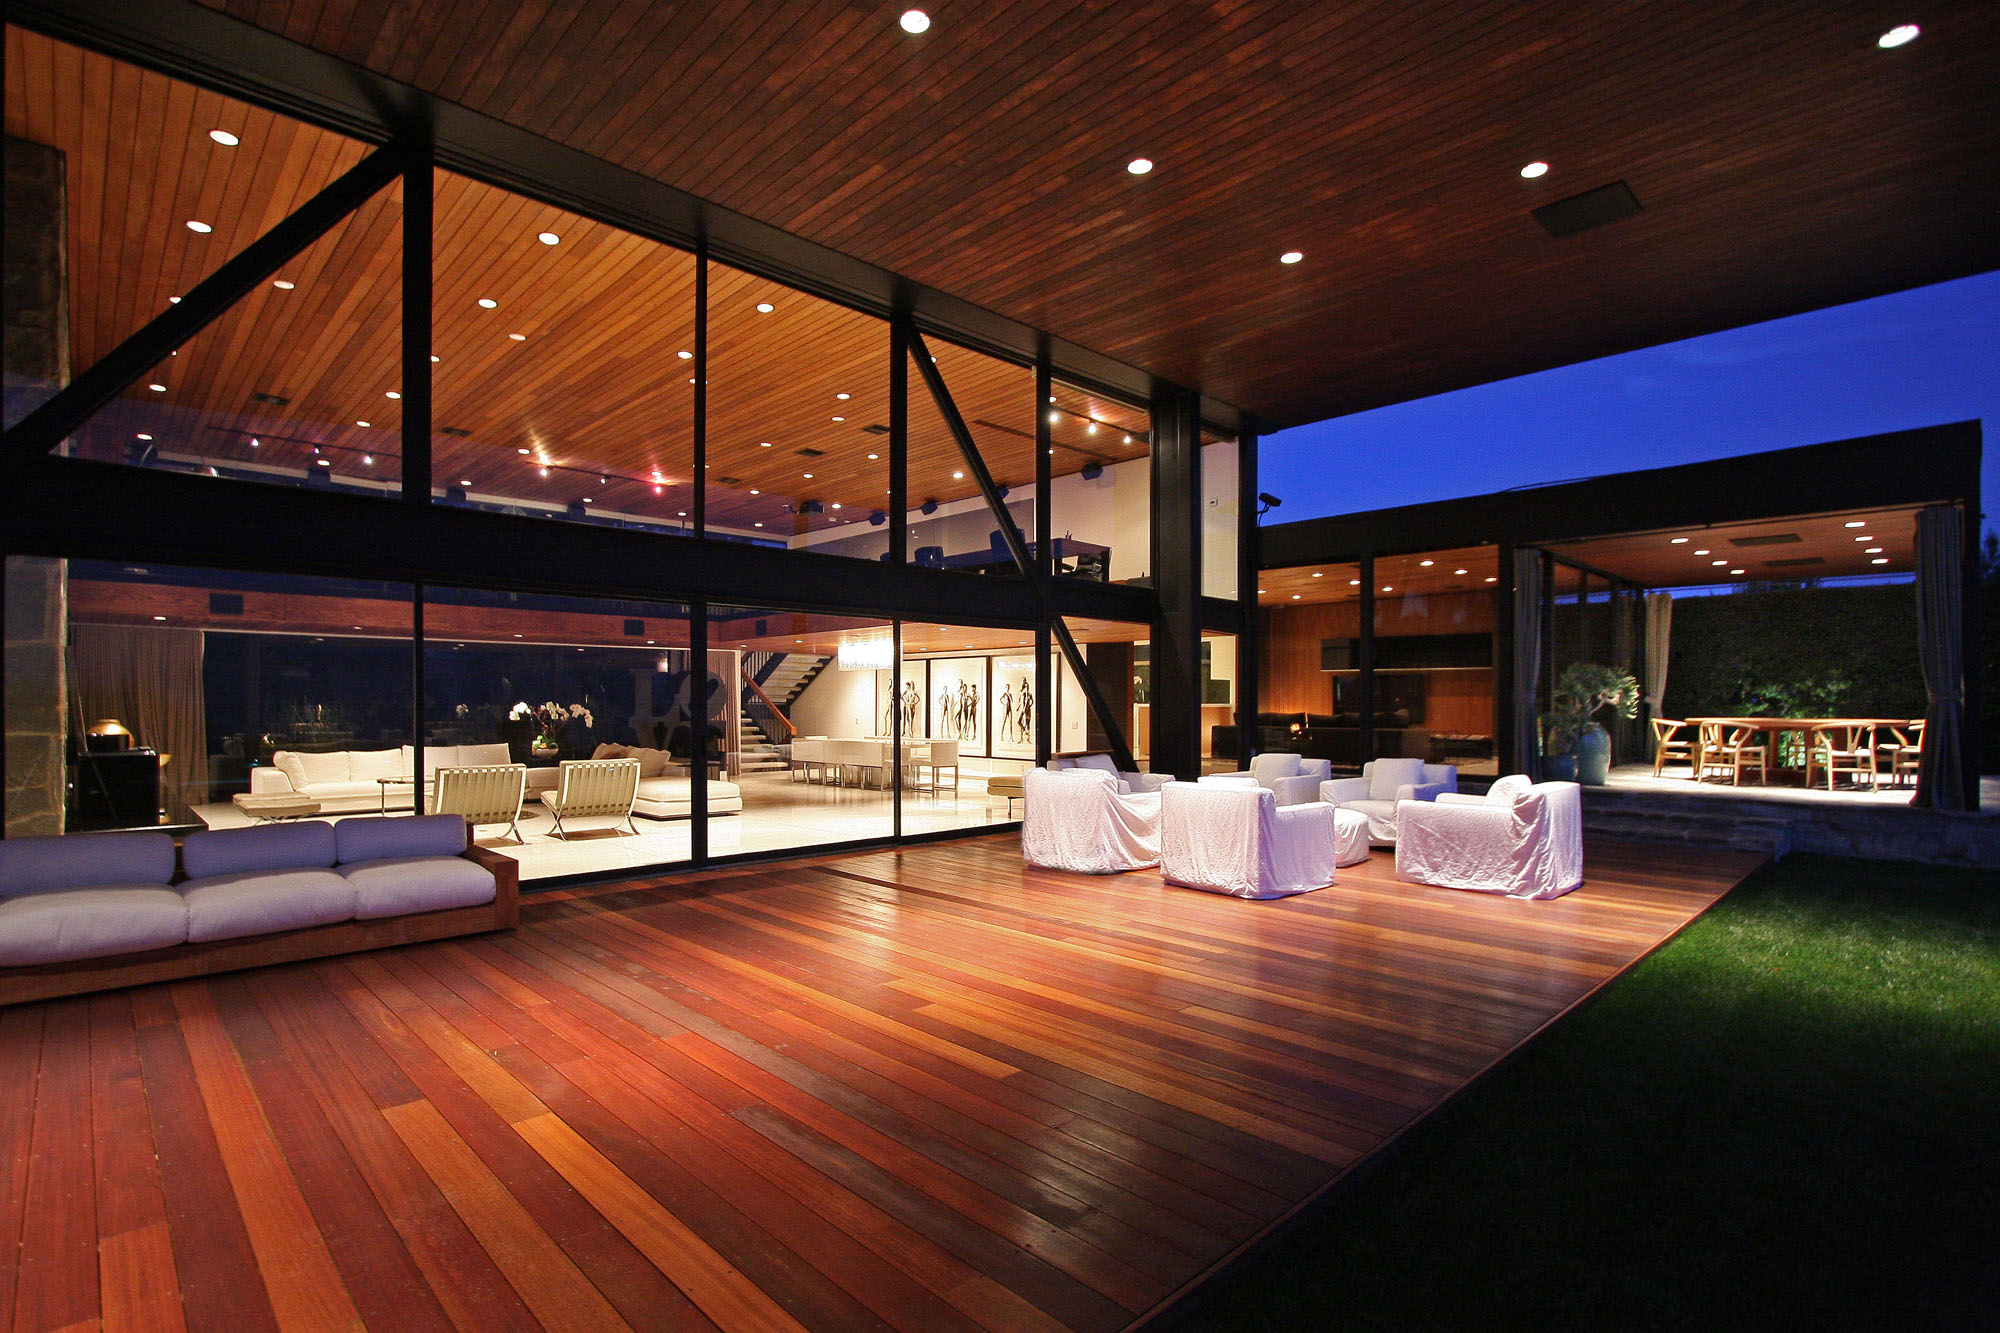 Wood Deck, Terrace, Revamped Interior in Beverly Hills